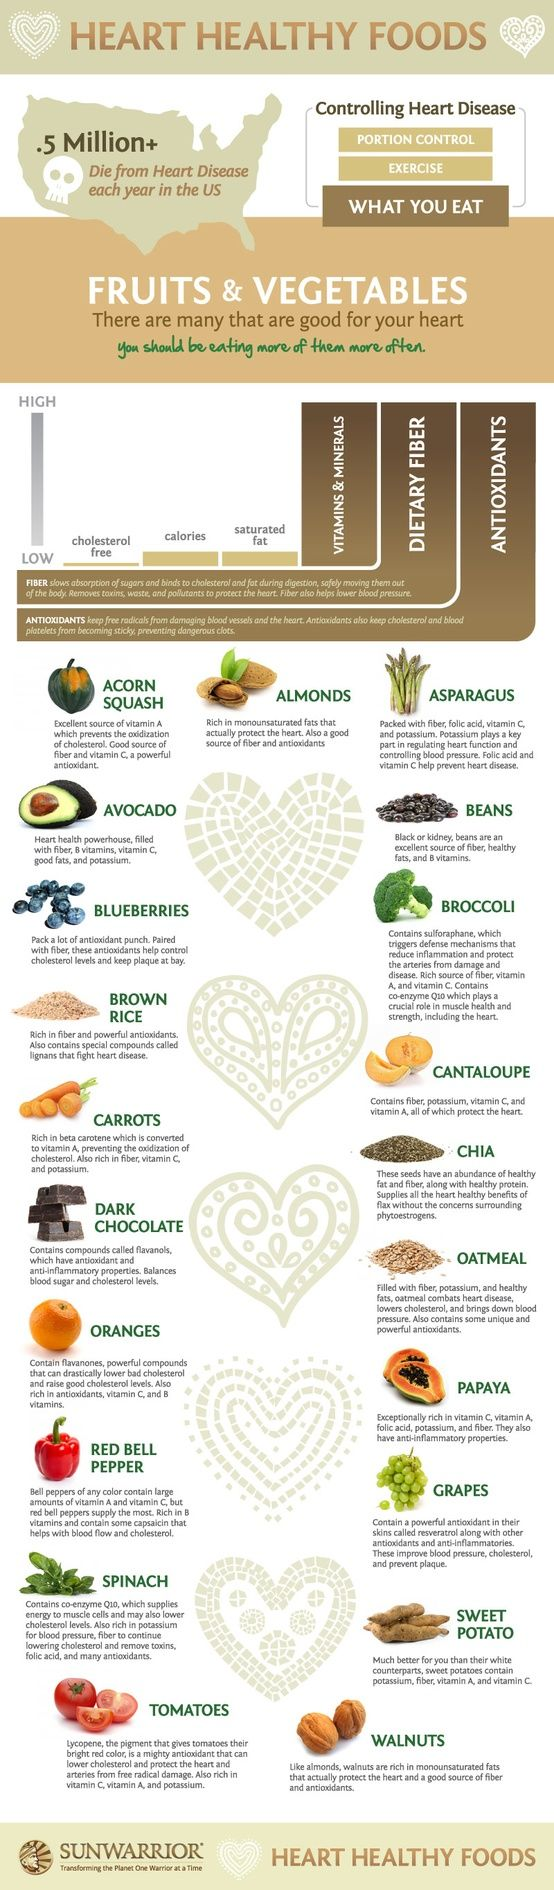 Heart healthy foods - learn what's good for you and why!